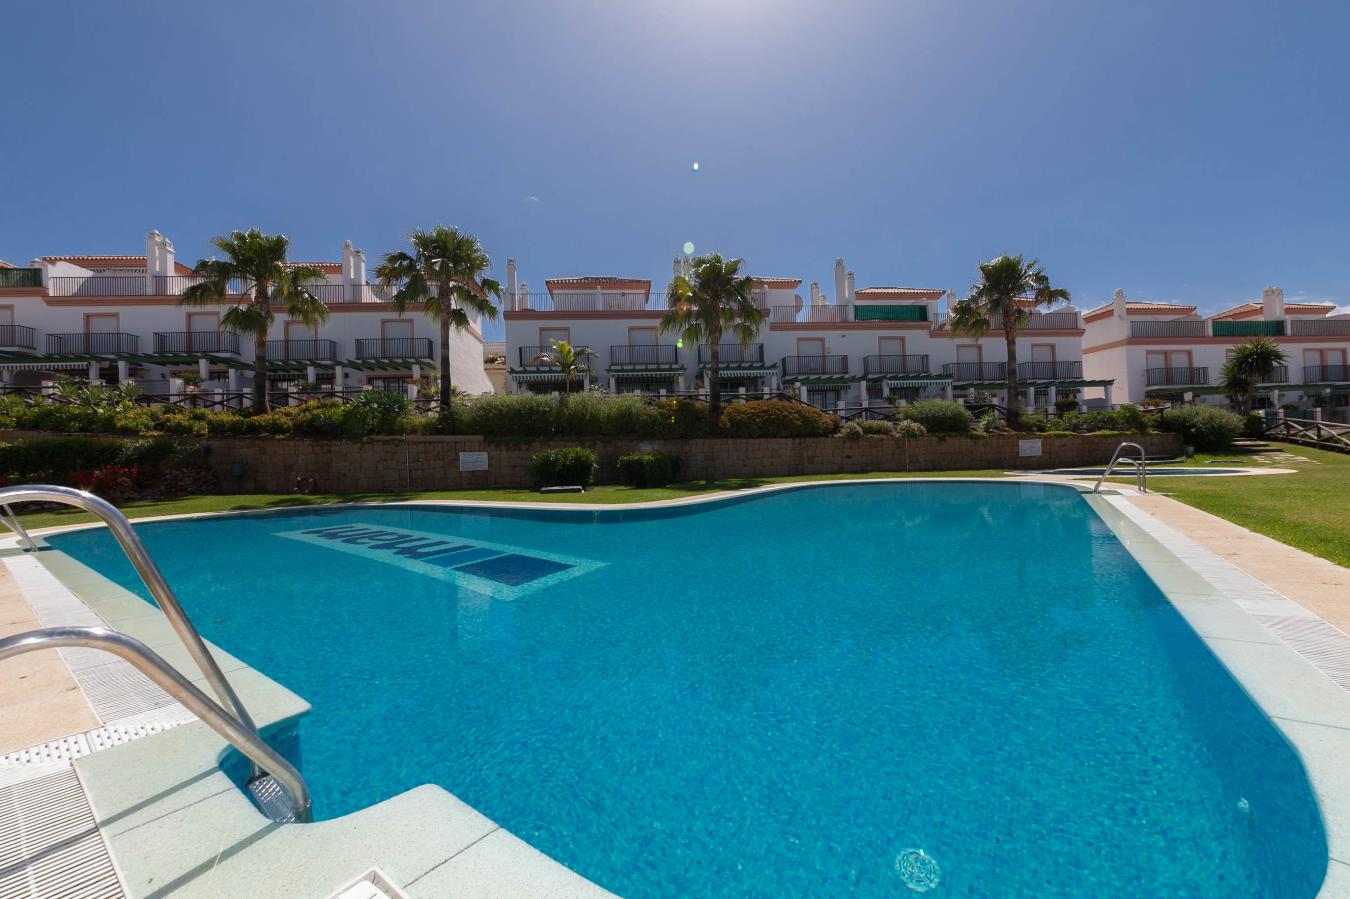 2 bedroom Townhouse at Cabopino, Marbella